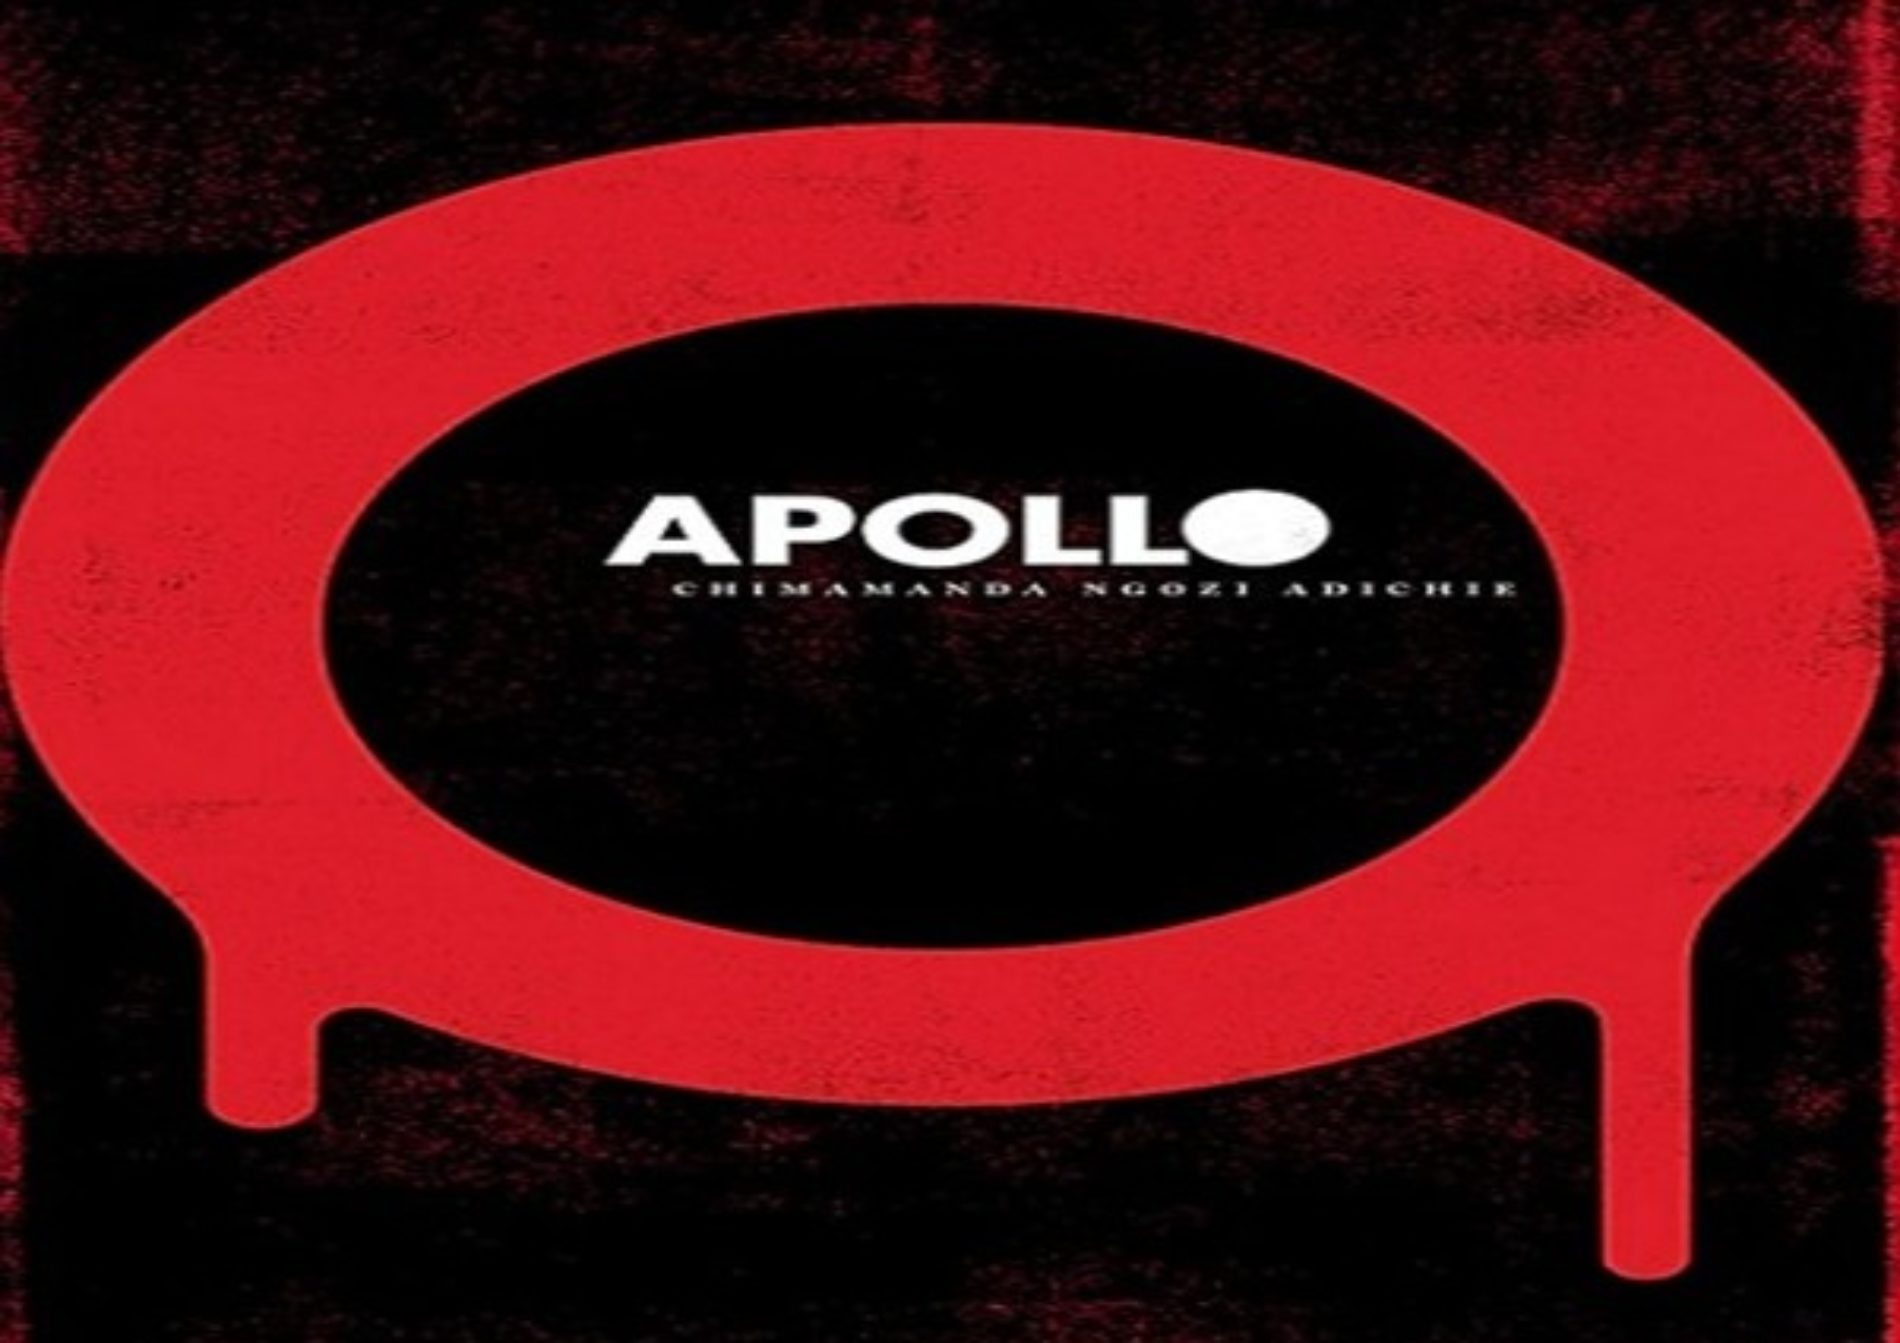 APOLLO, A Story By Chimamanda Adichie